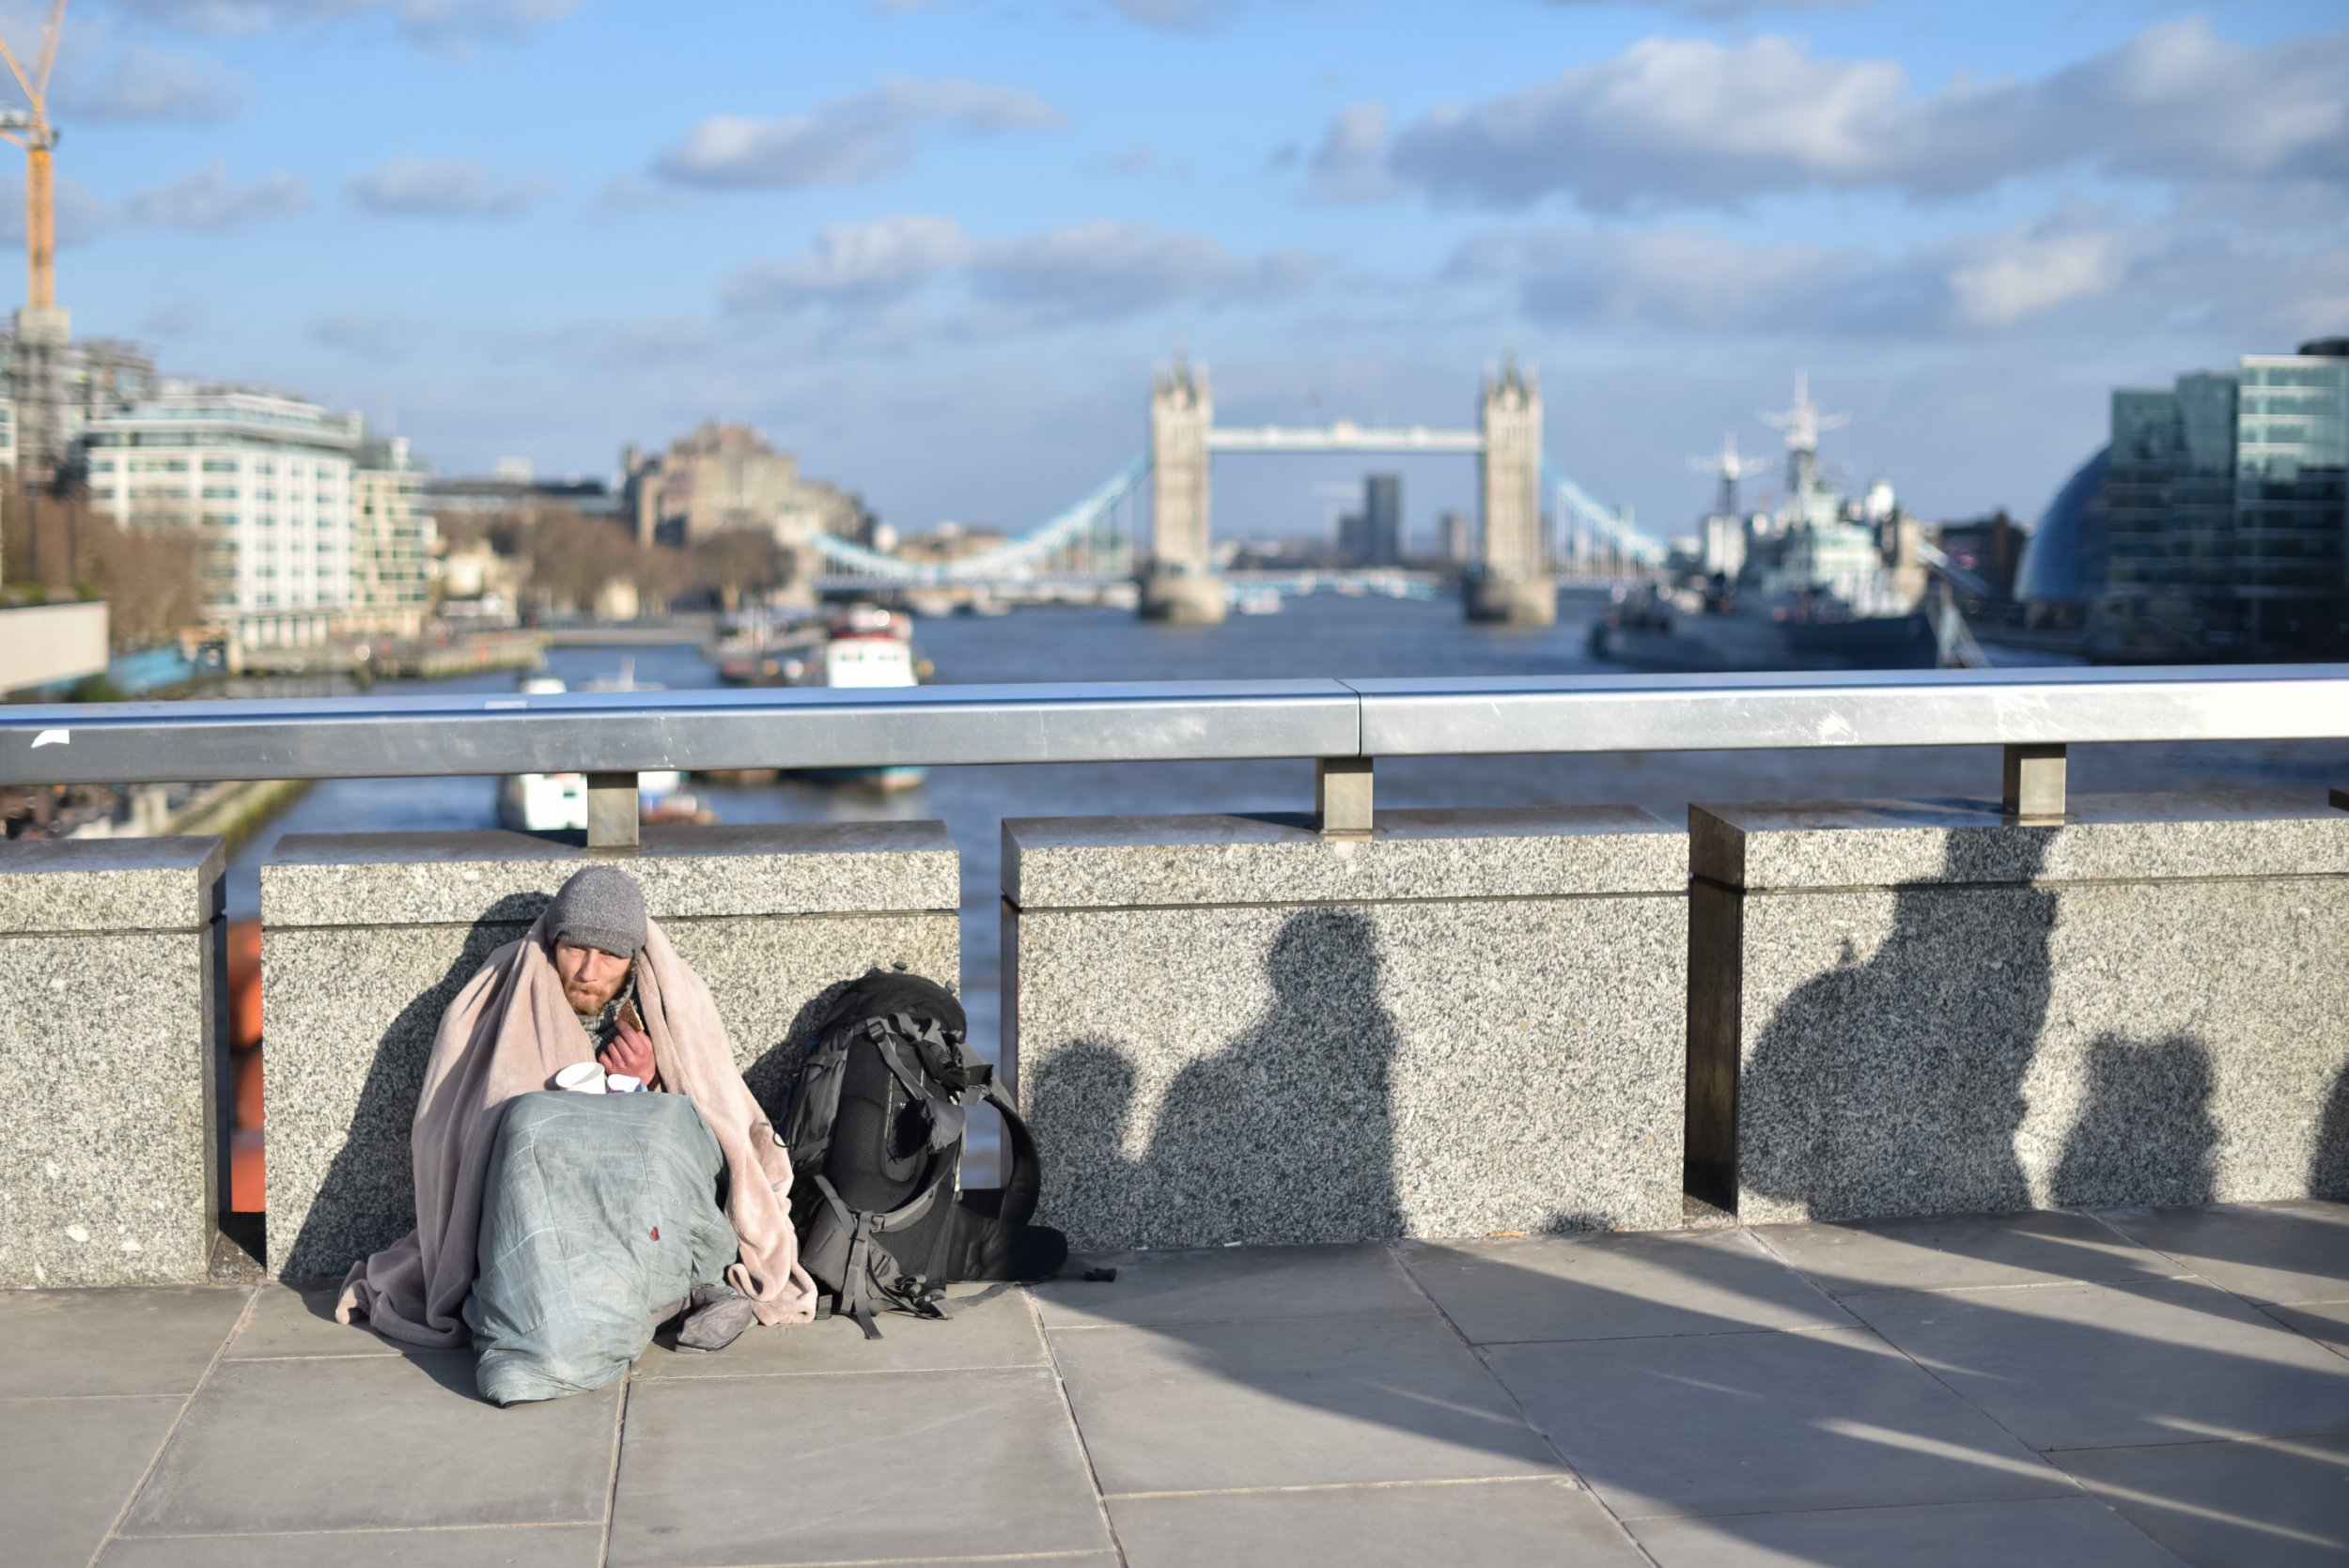 Homeless people given one-way tickets by councils to leave their area